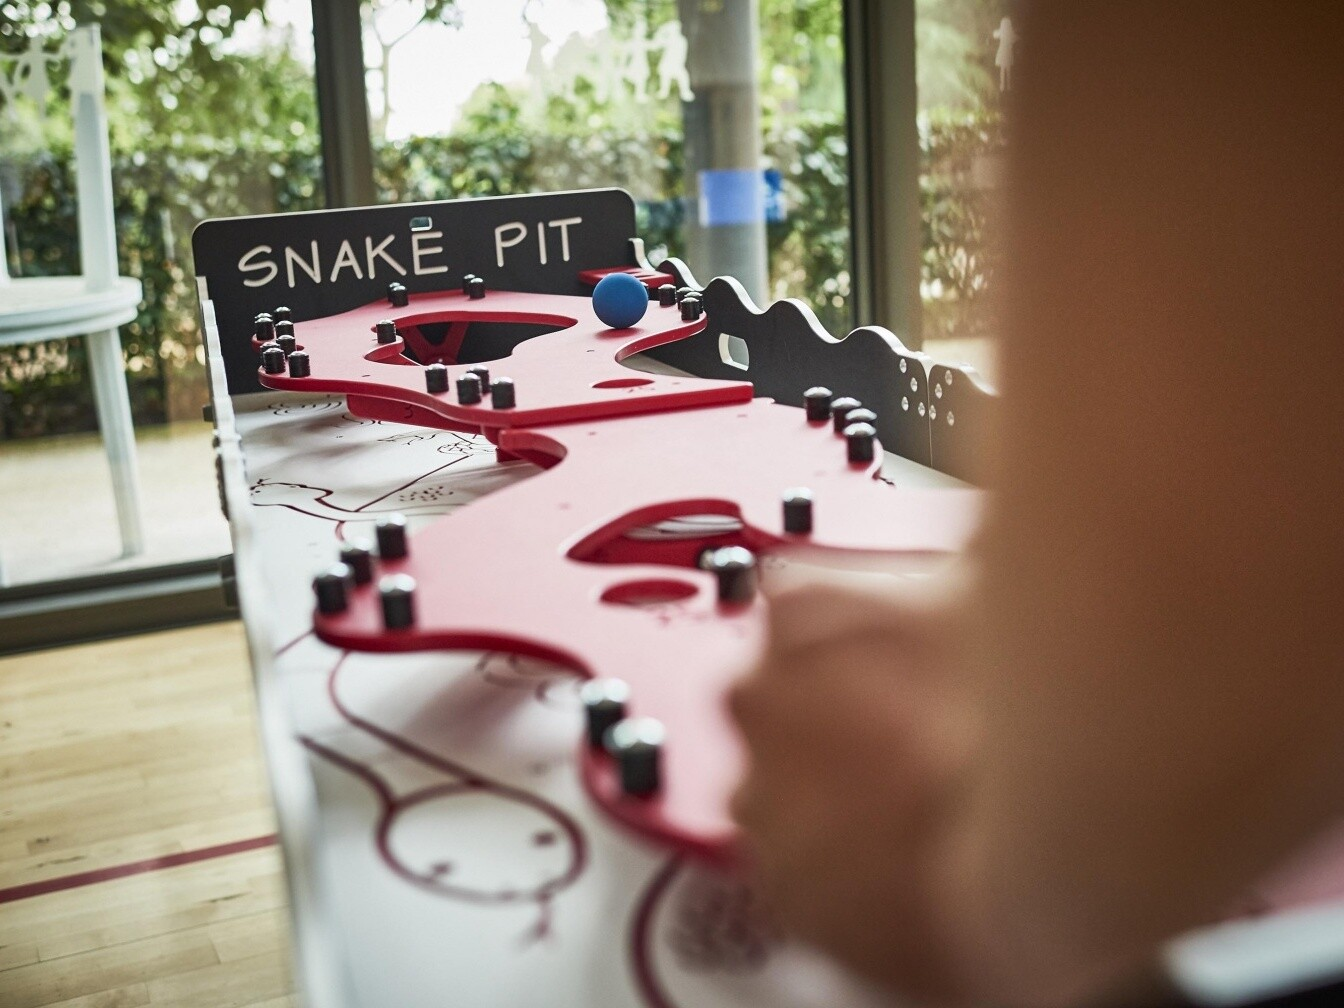 Snake Pit Nostalgic Games Hire London